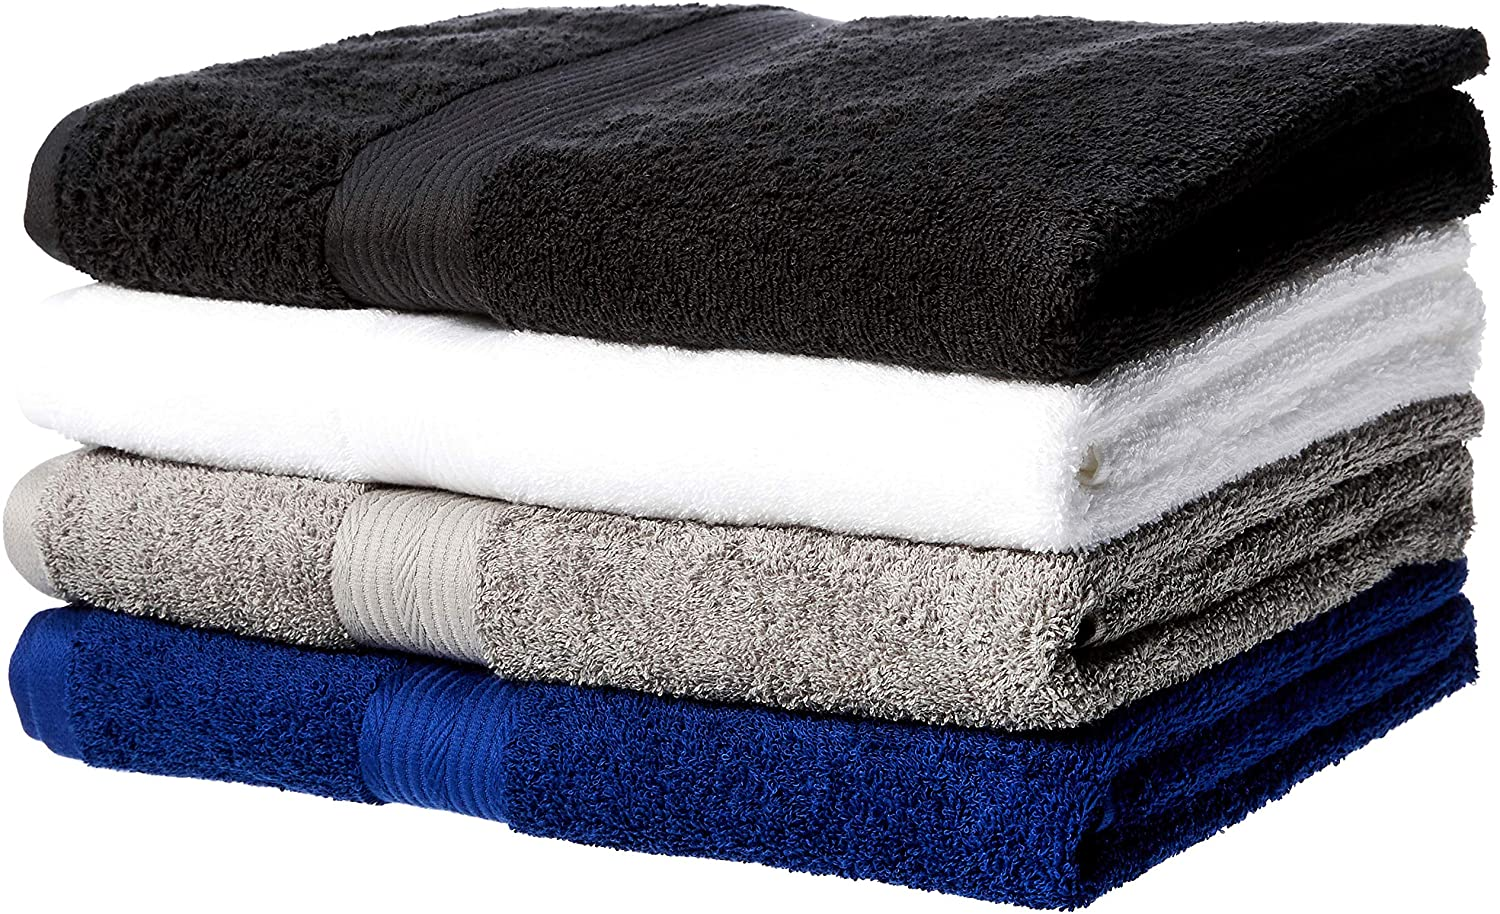 AmazonBasics Fade-Resistant Cotton Bath Towel - Pack of 4, Multi-Color Black, White, Grey, Navy Blue